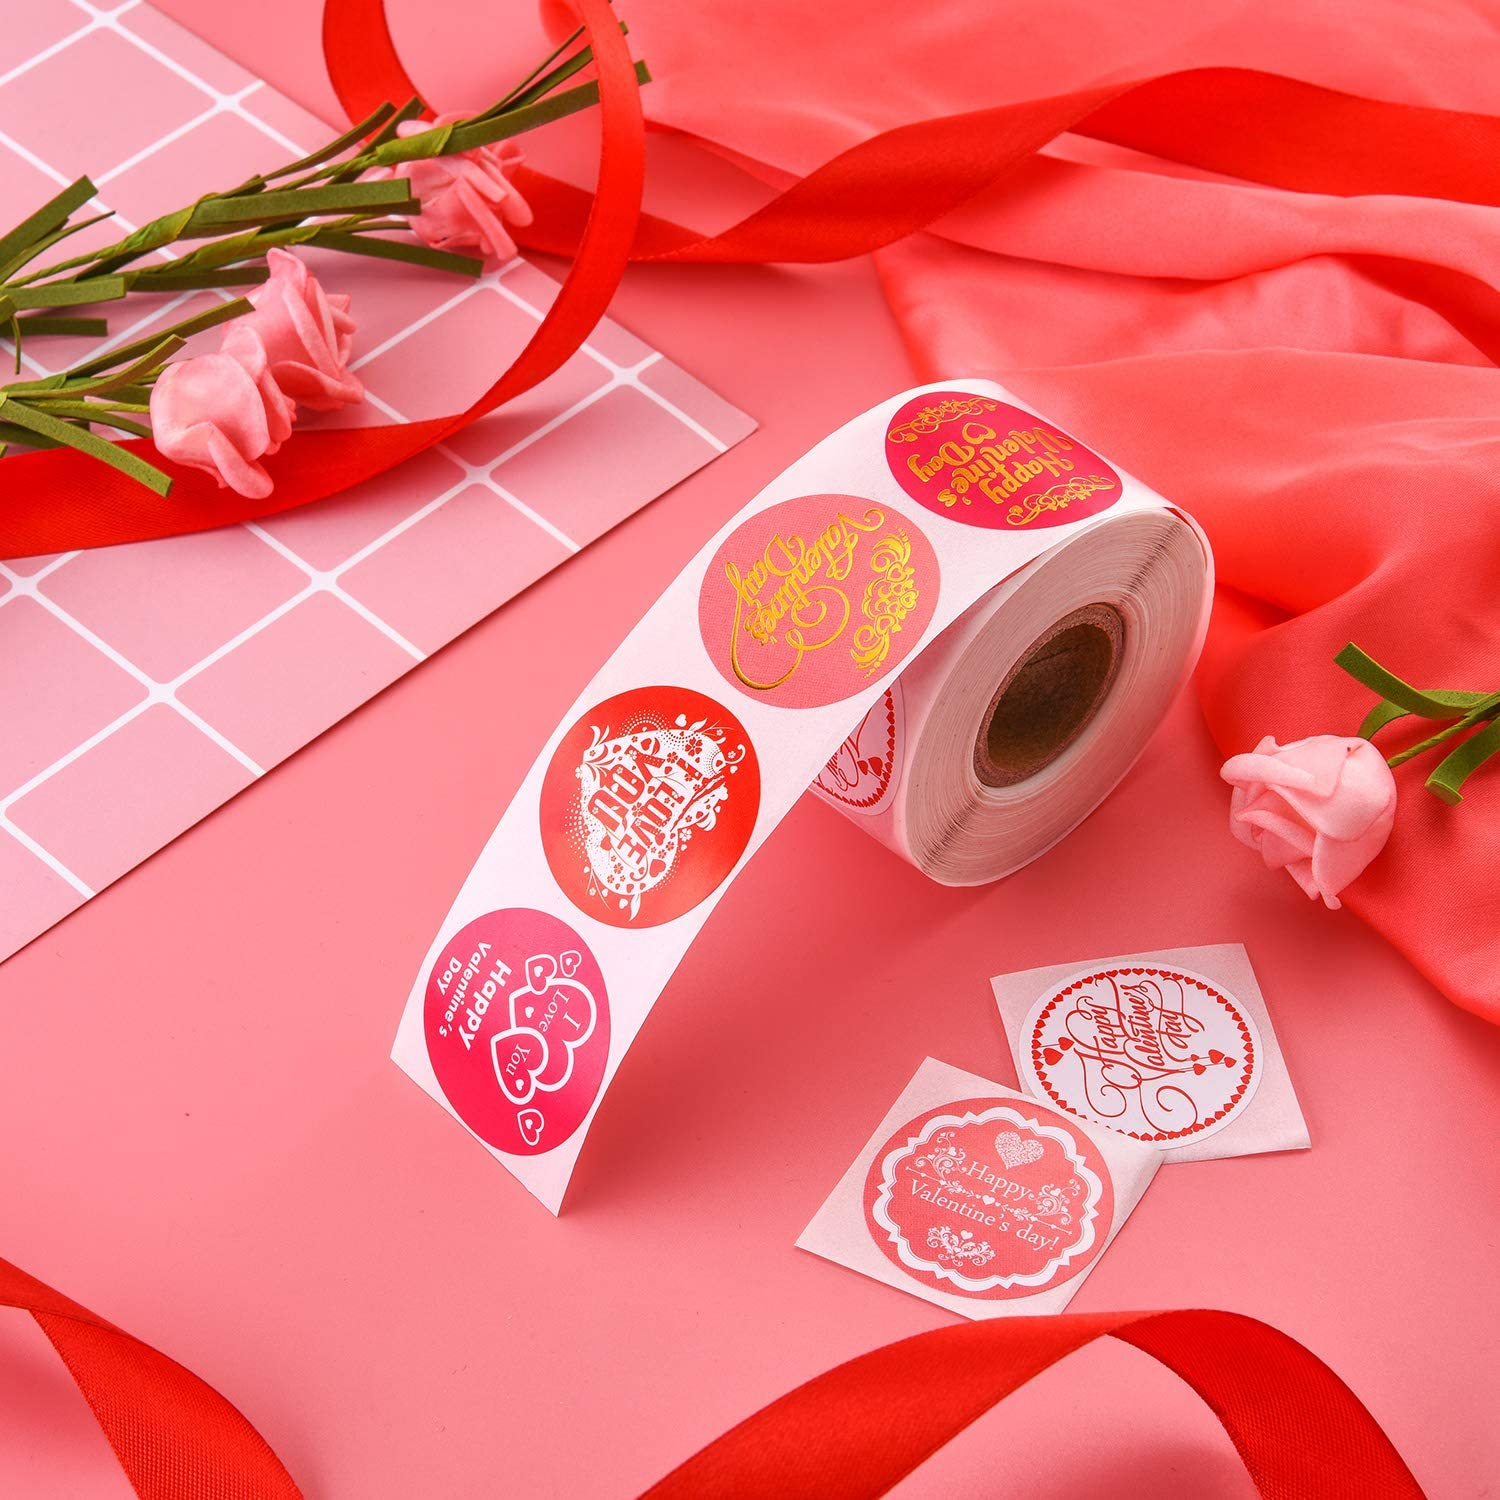 Thank You, 500 Pieces Thank You Seal Stickers Happy New Year Stickers Valentines Day Stickers Inspirational Quote Stickers Snowflake Label Stickers